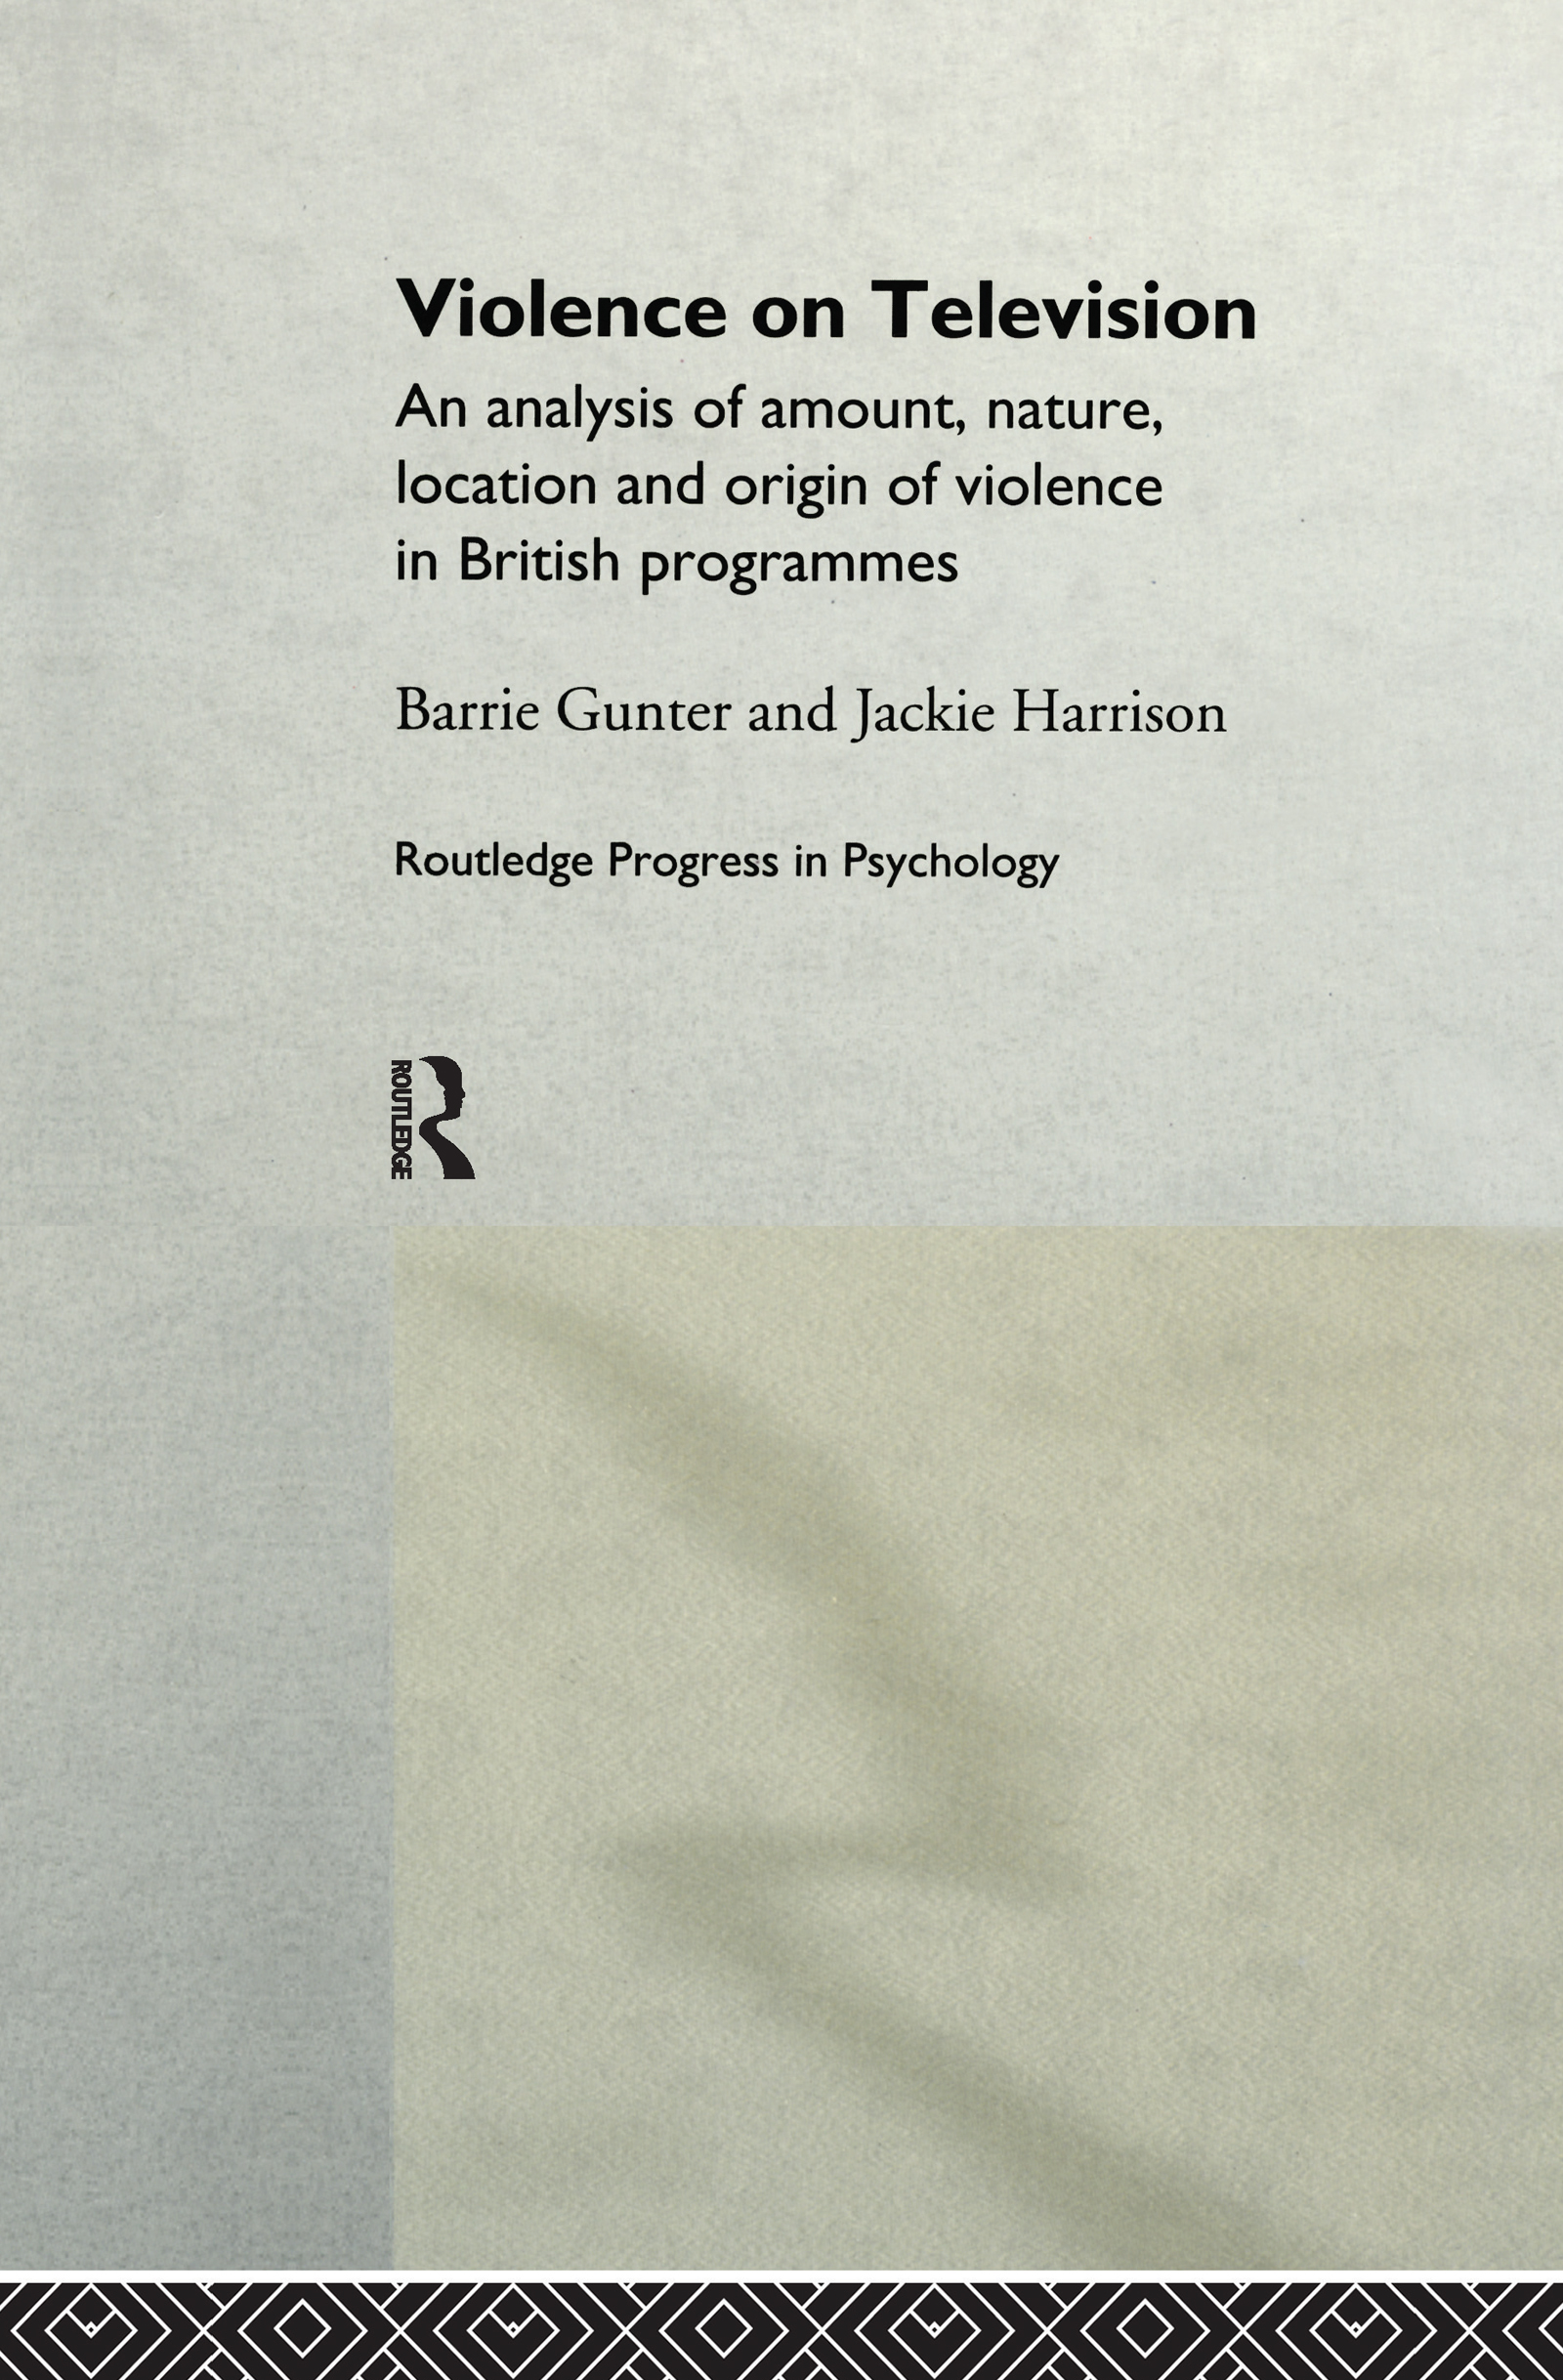 Violence on Television: An Analysis of Amount, Nature, Location and Origin of Violence in British Programmes (Hardback) book cover